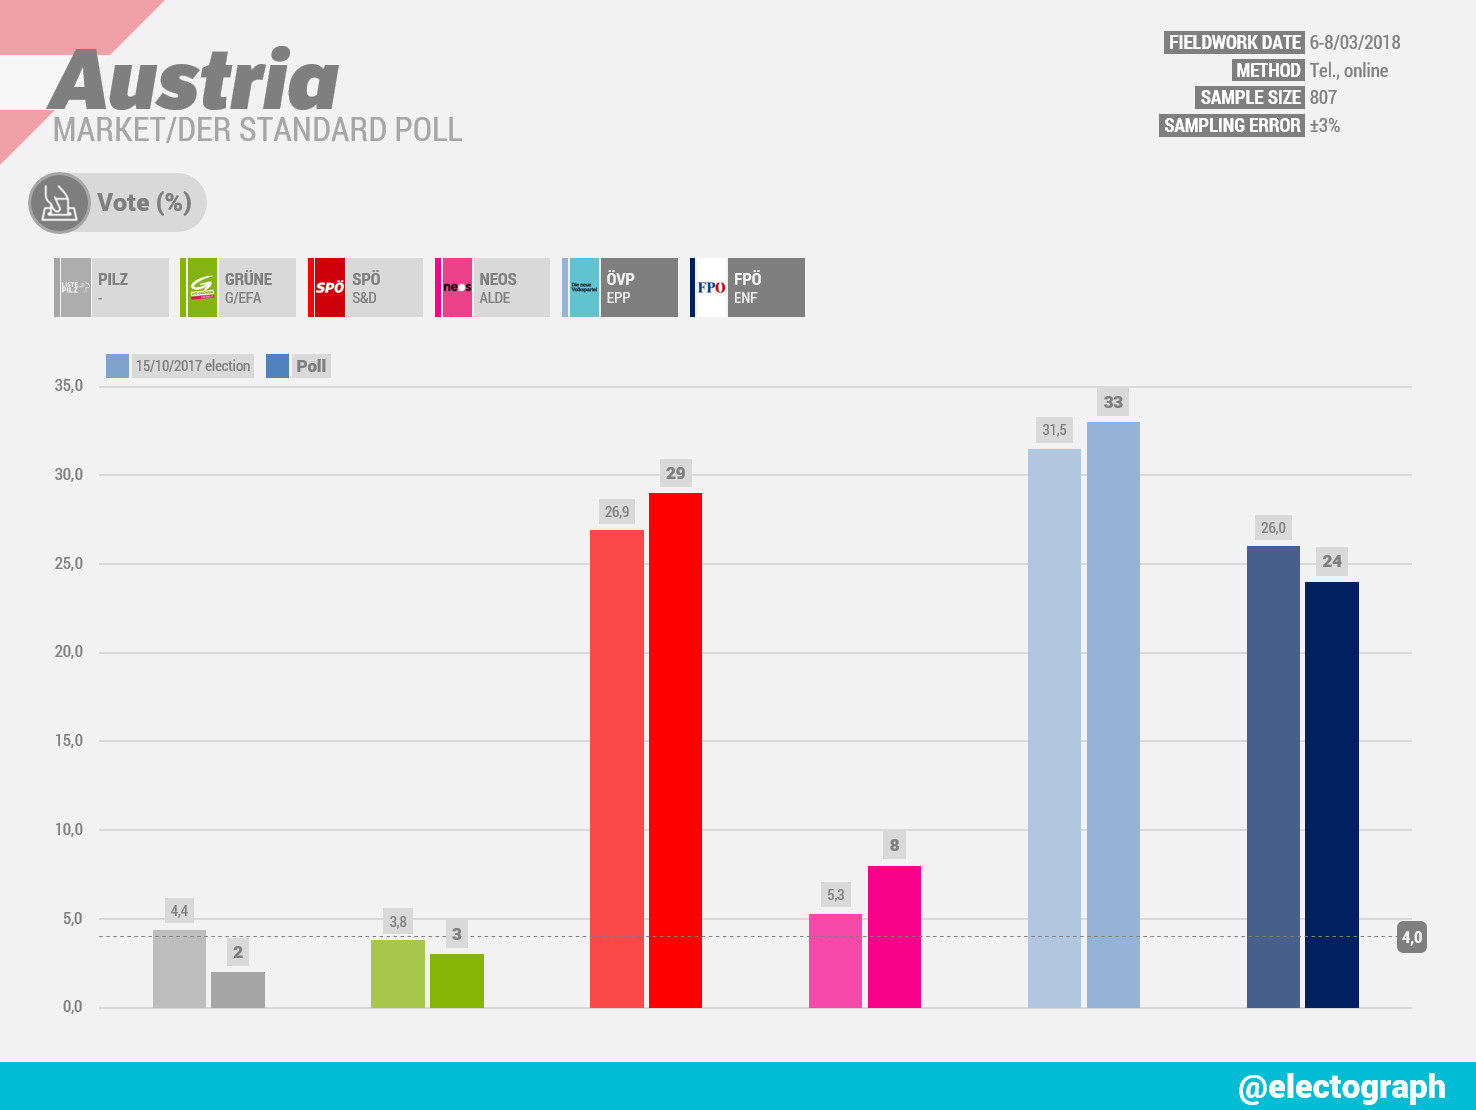 AUSTRIA Market poll chart for Der Standard, March 2018